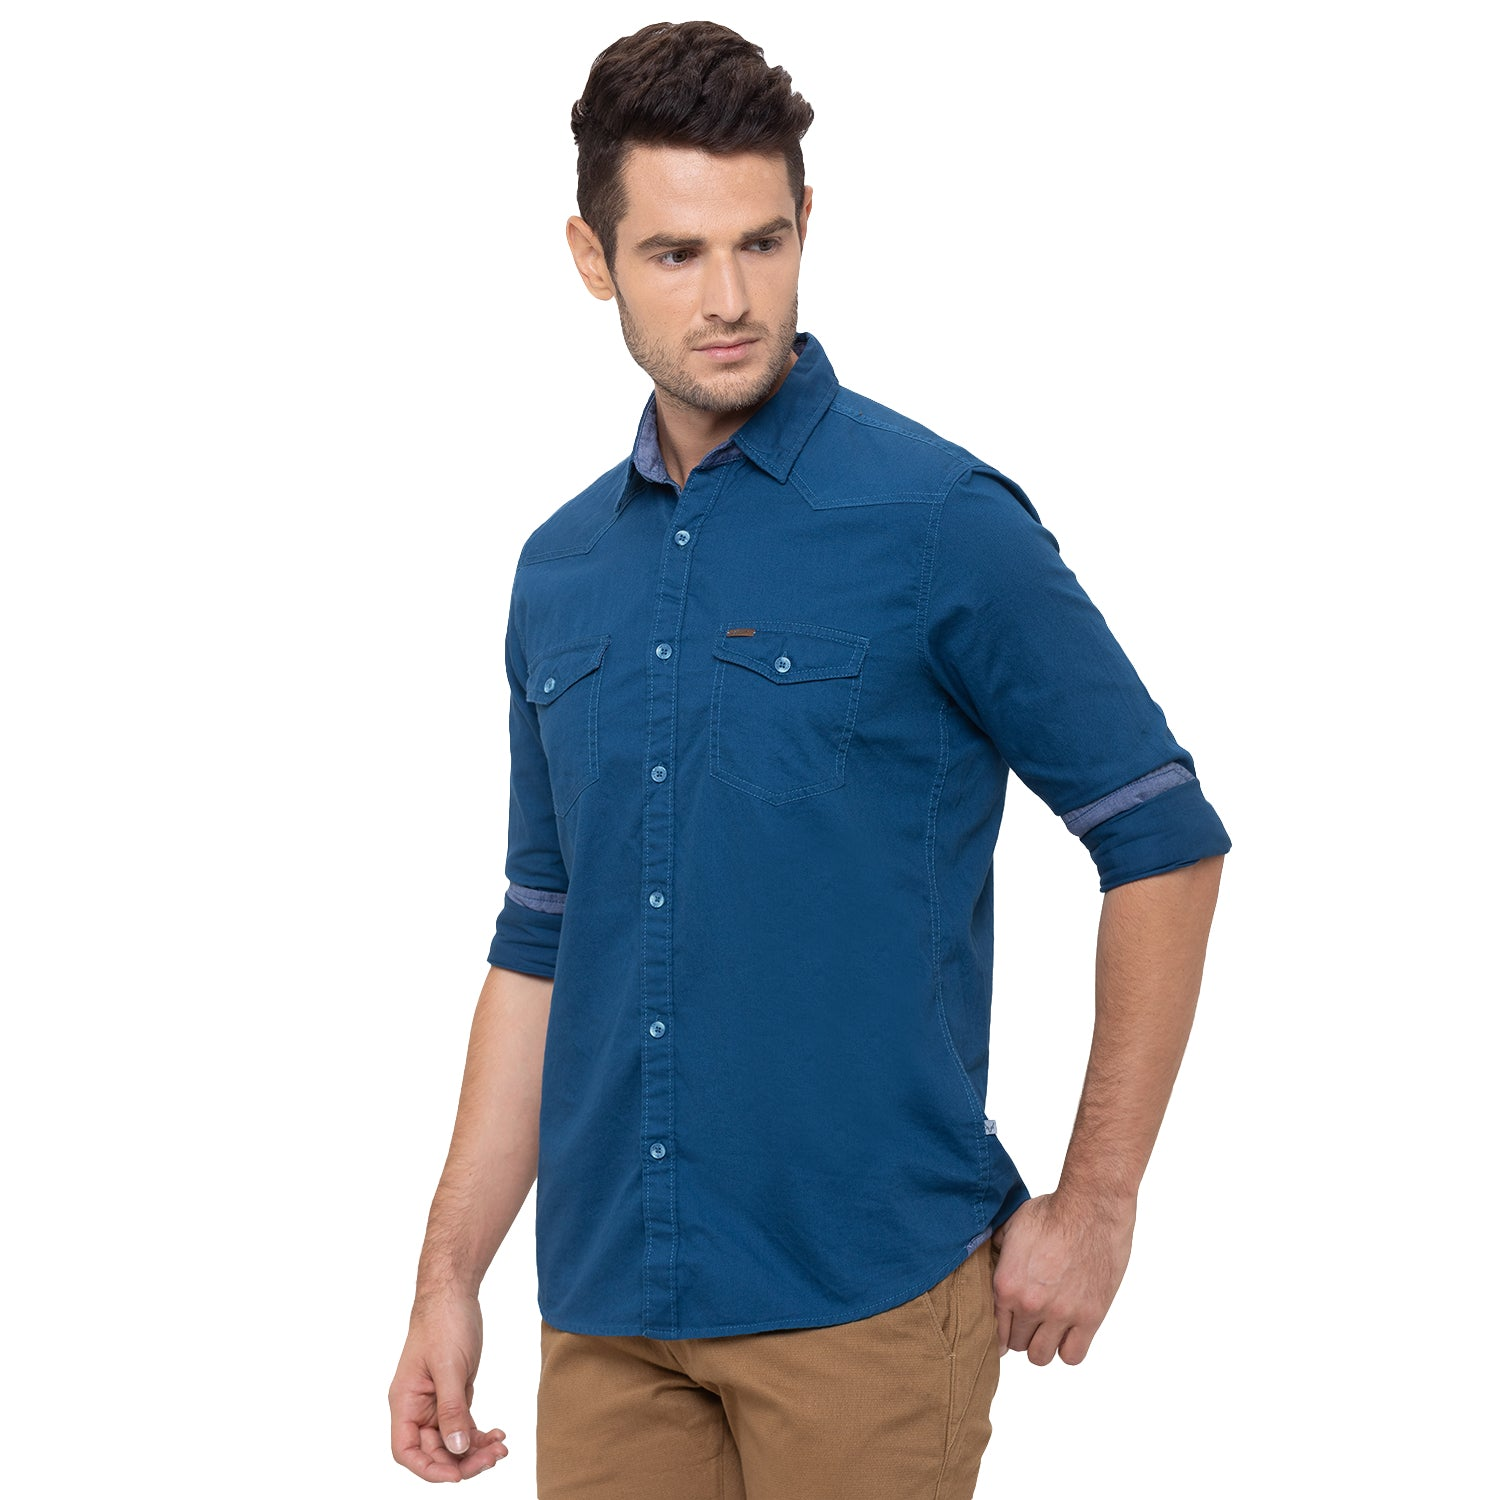 Globus Blue Solid Shirt-4